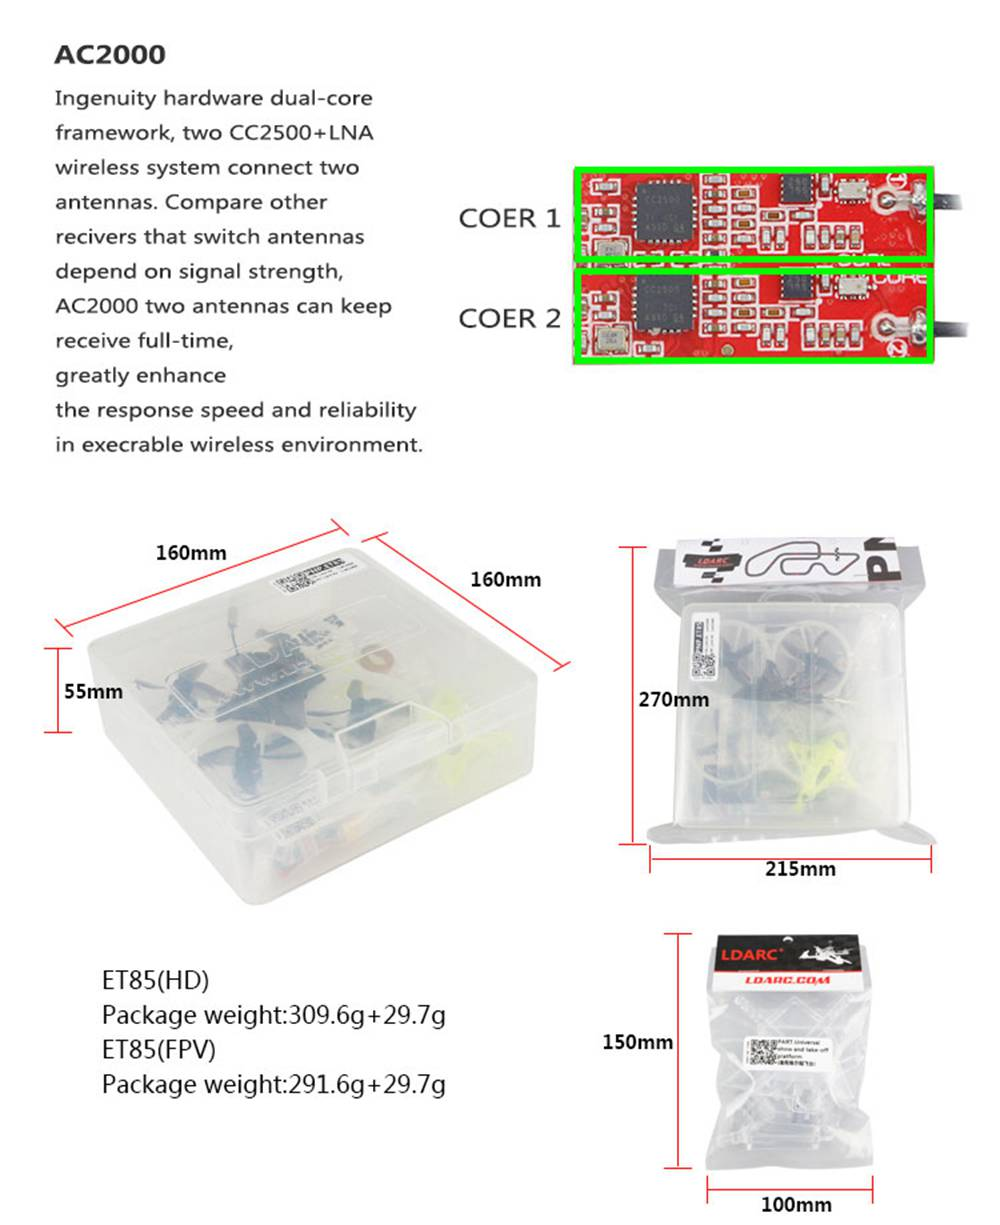 LDARC ET85 HD 4S Surround LED Whoop FPV Racing Drone F411 4in1 12A BLheli_S 5.8G 48CH 200mW VTX Caddx Turtle V2 Cam PNP - Without Receiver